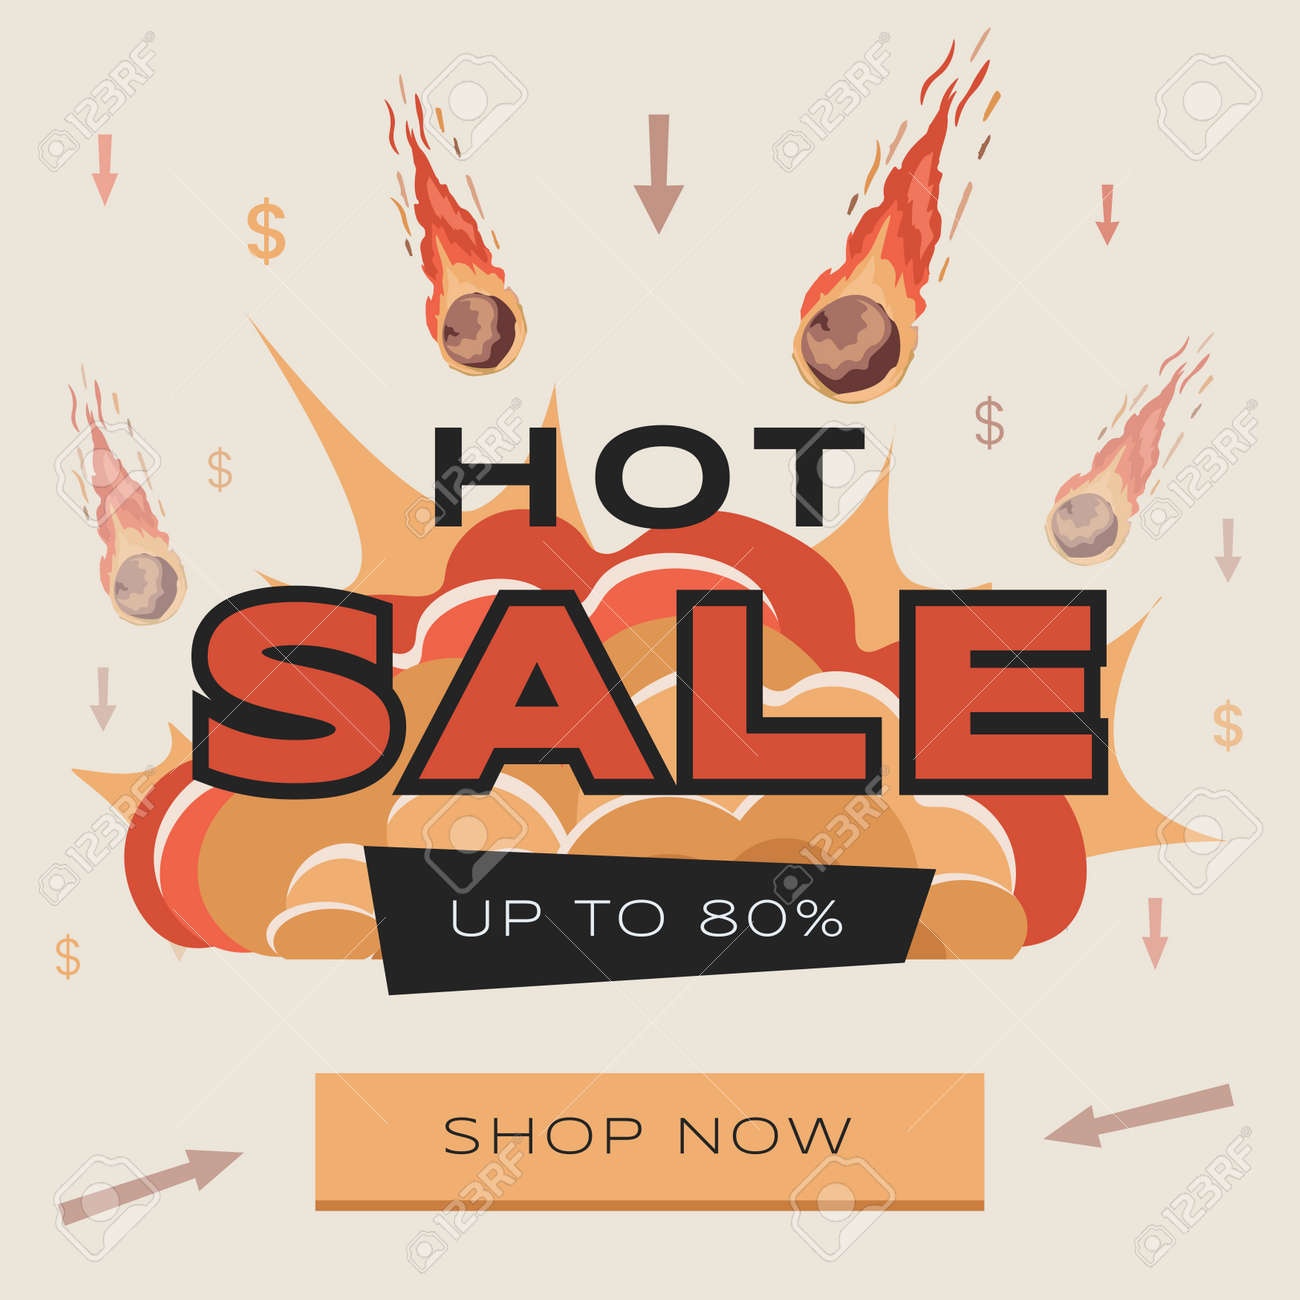 Bright and colorful Hot Sale advertisement flyer design with text. Large burning meteorites falling on prices. - 172534804